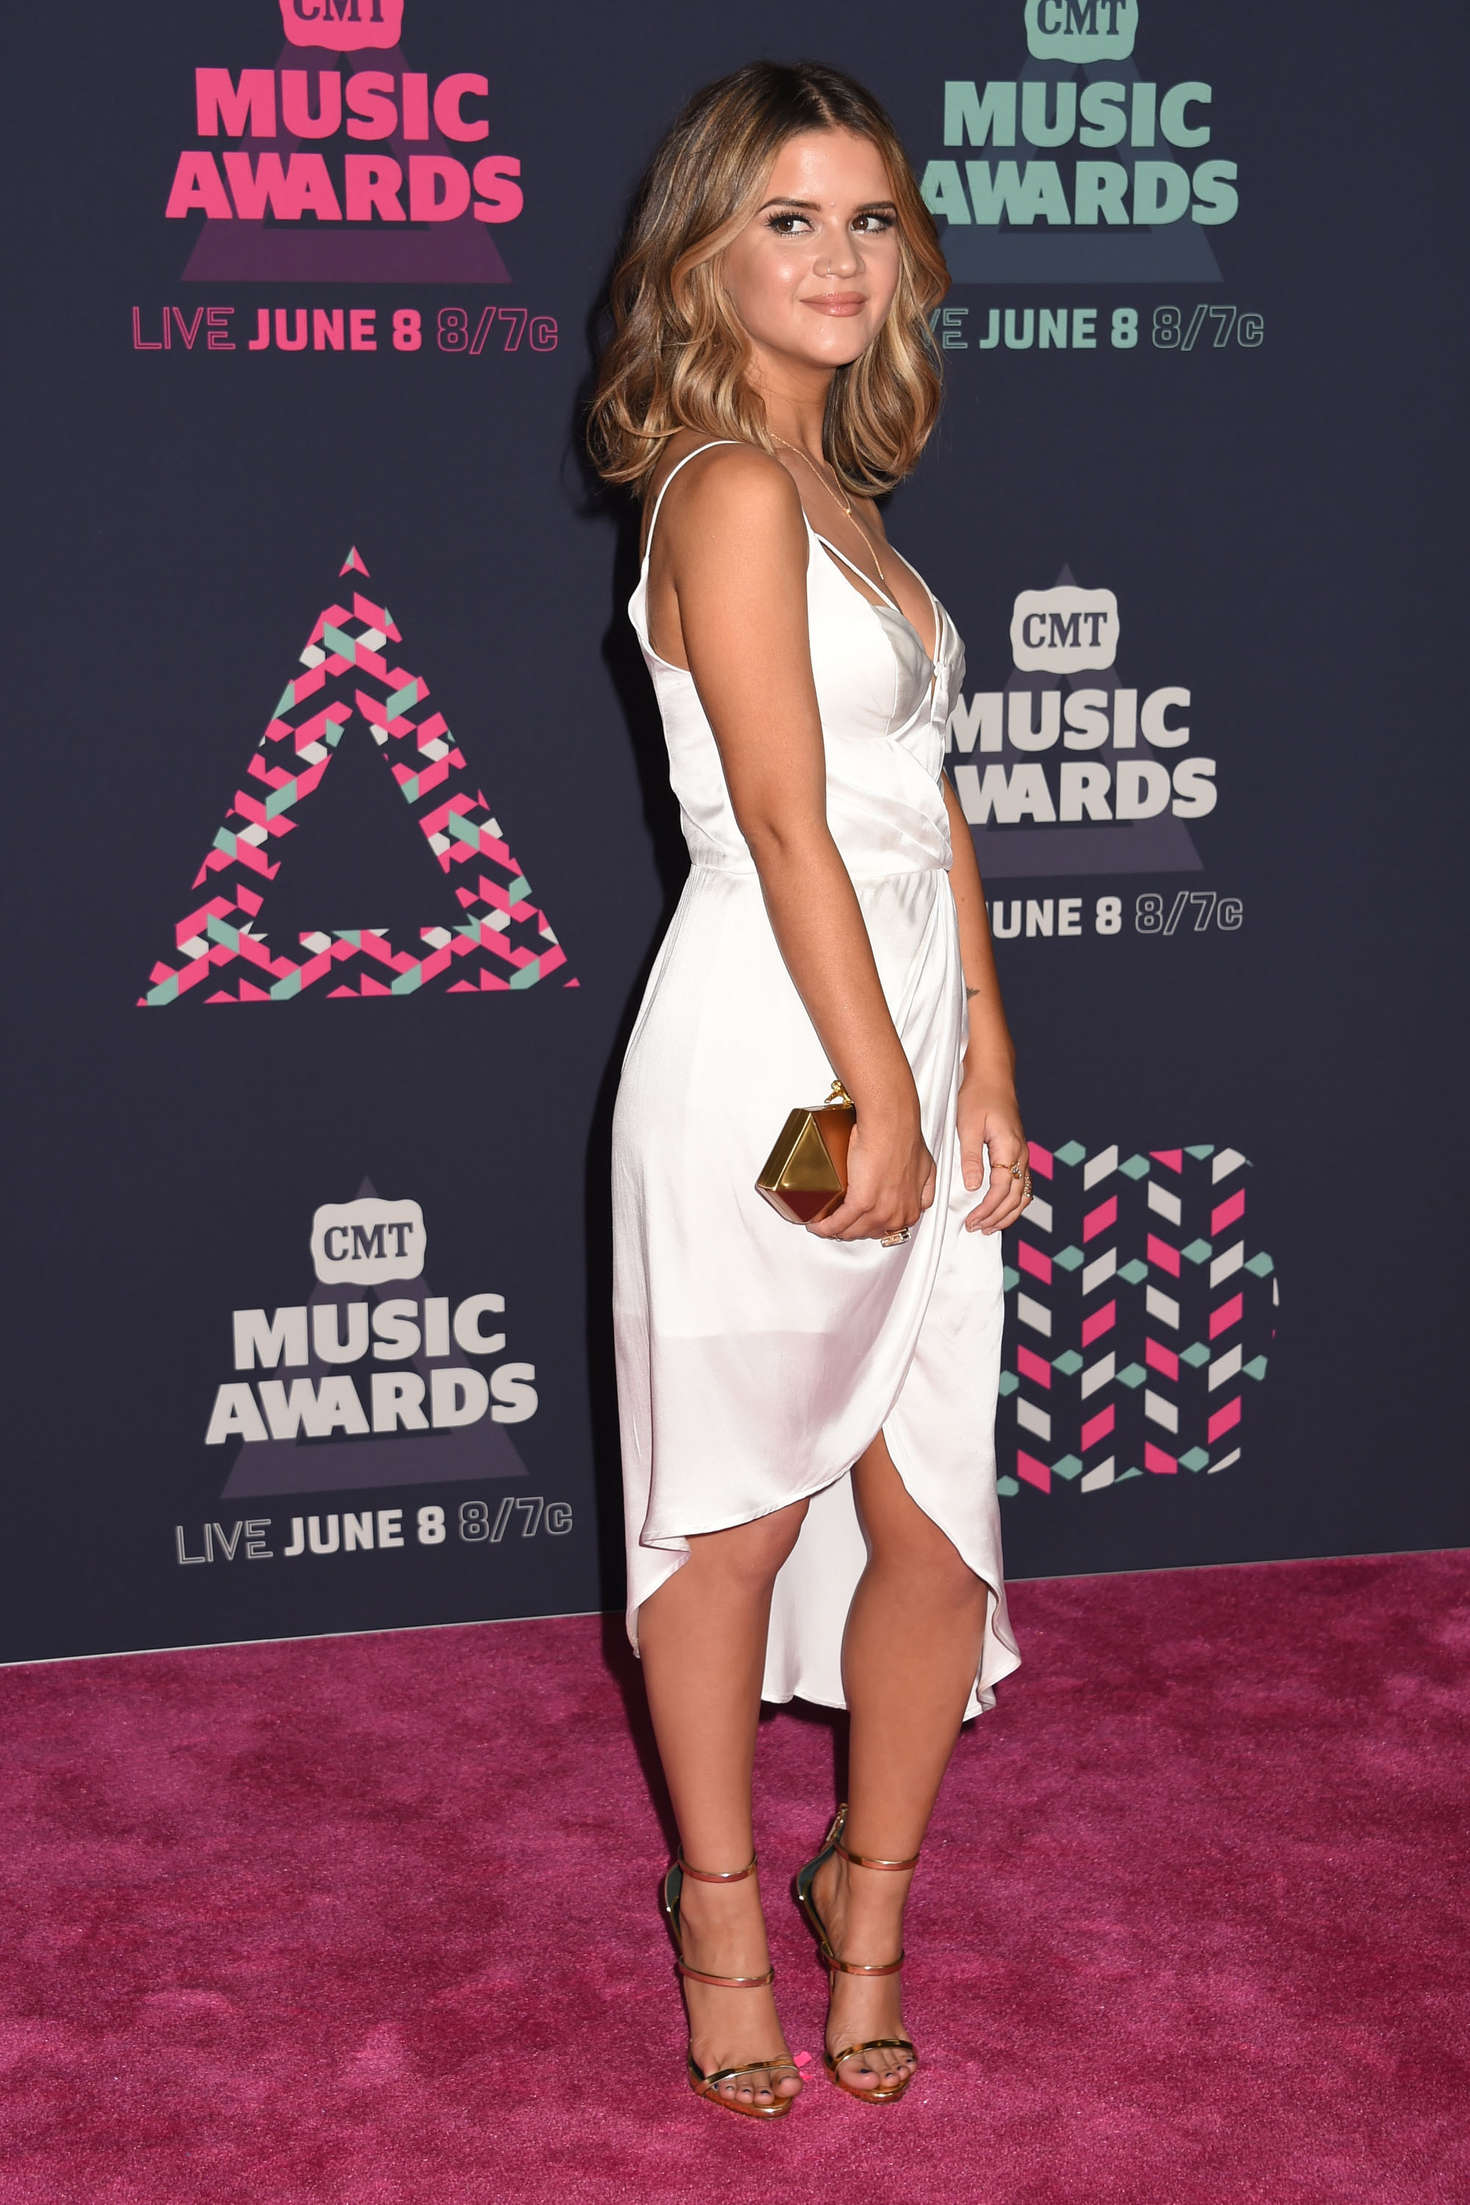 Maren Morris CMT Music Awards 2016 02 GotCeleb